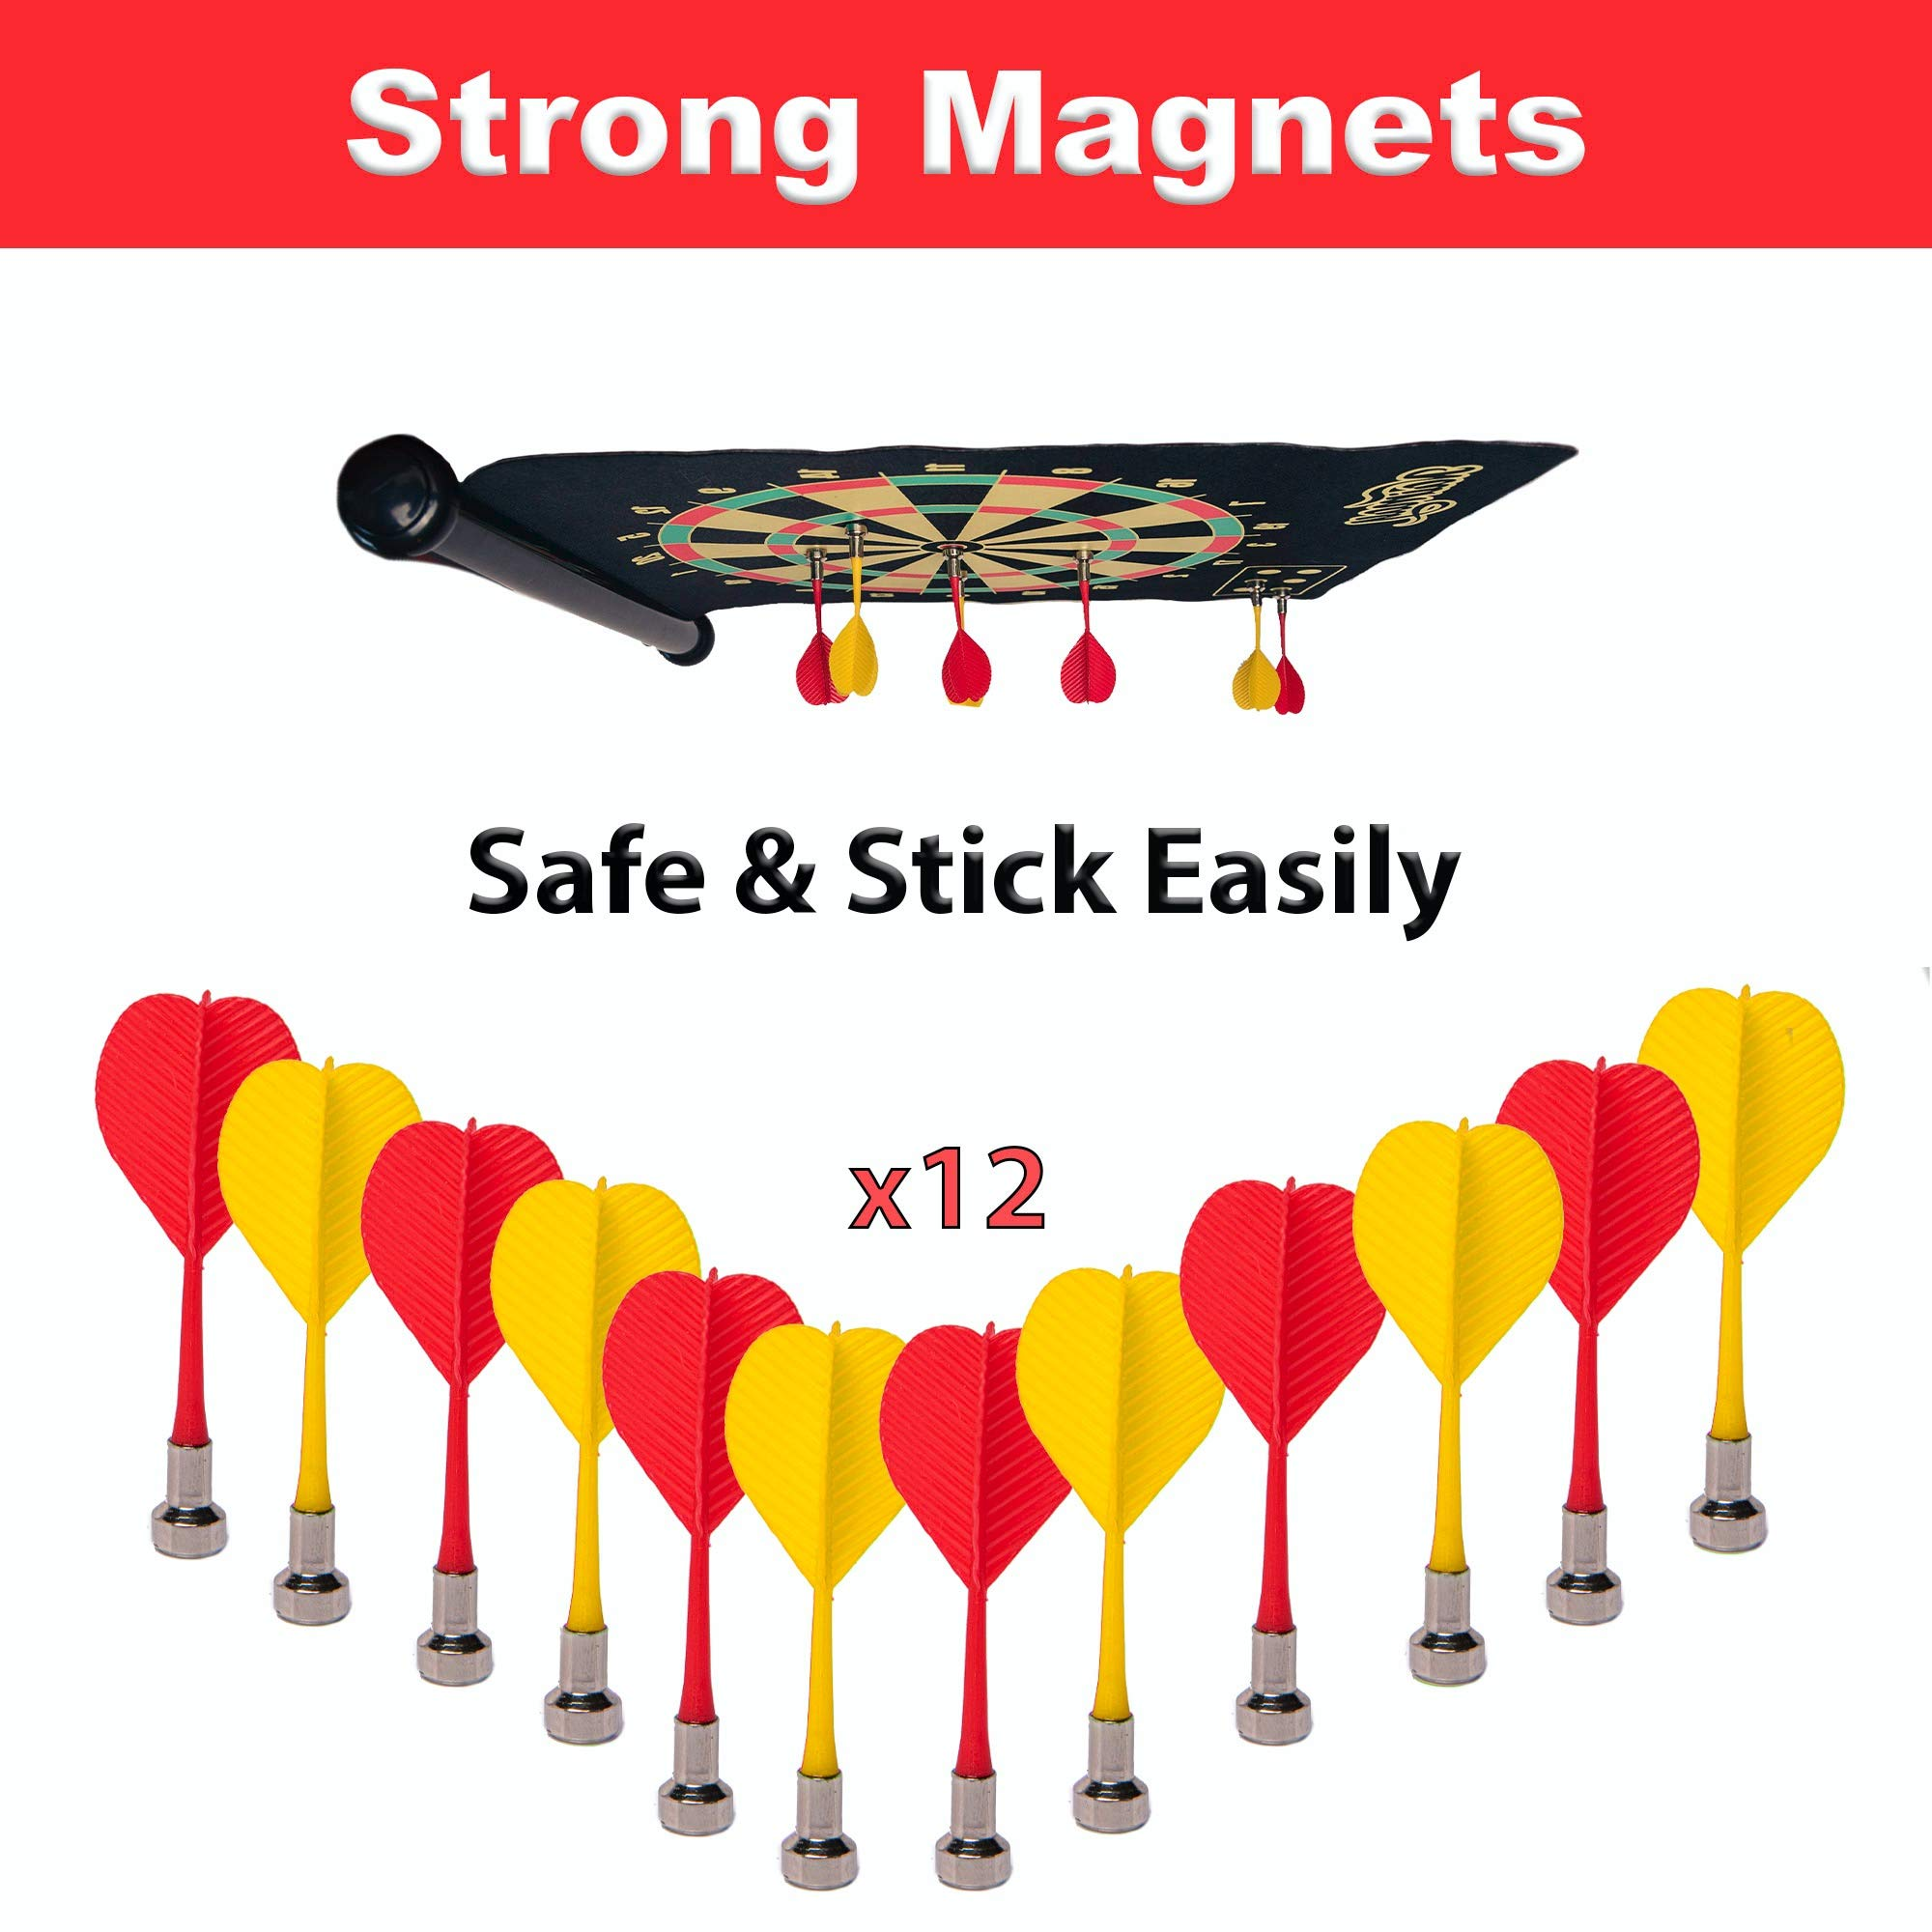 Naimay Magnetic Dart Board for Kids, Teenagers and Adults - Roll-Up, Double Sided, Hang it Anywhere Safe Toy Dart Game Set with 12 Darts - Indoor/Outdoor Game - Gift for Boys and Girls Age 7+